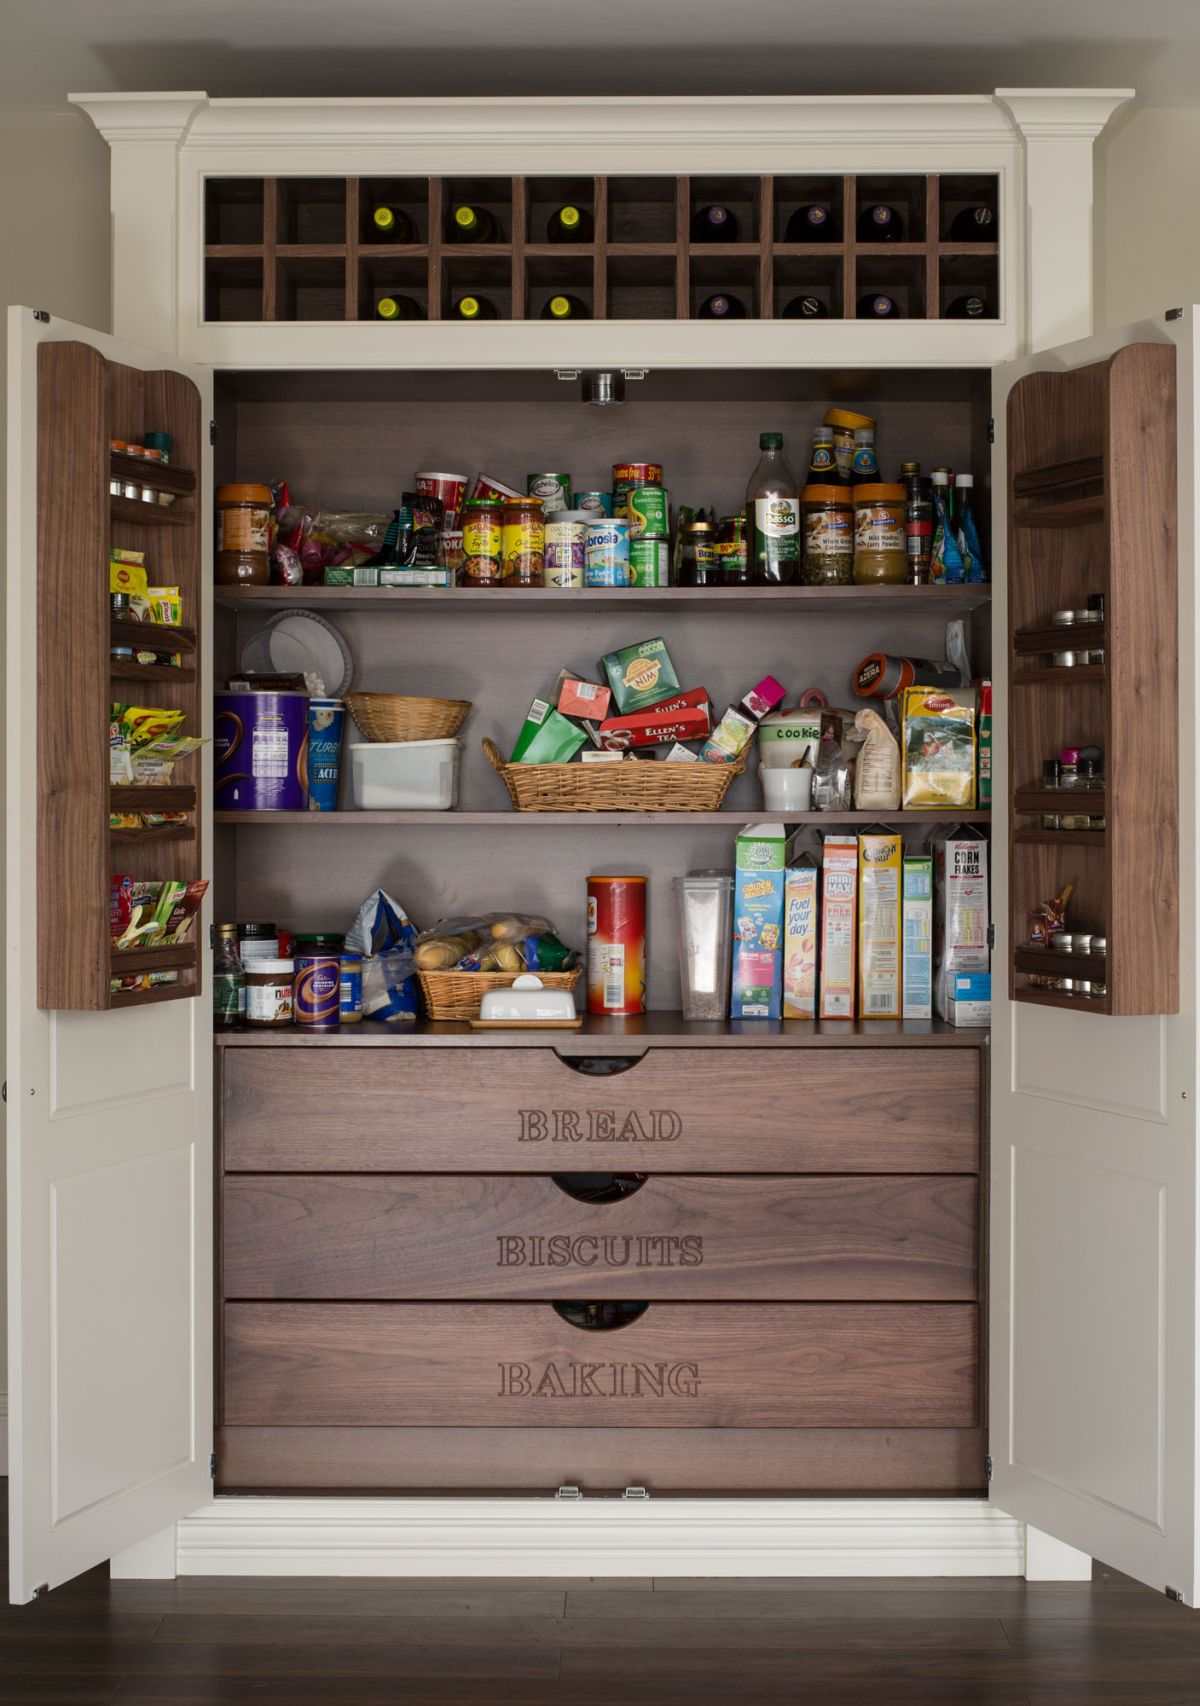 15 kitchen pantry ideas with form and function - Kitchen Pantries